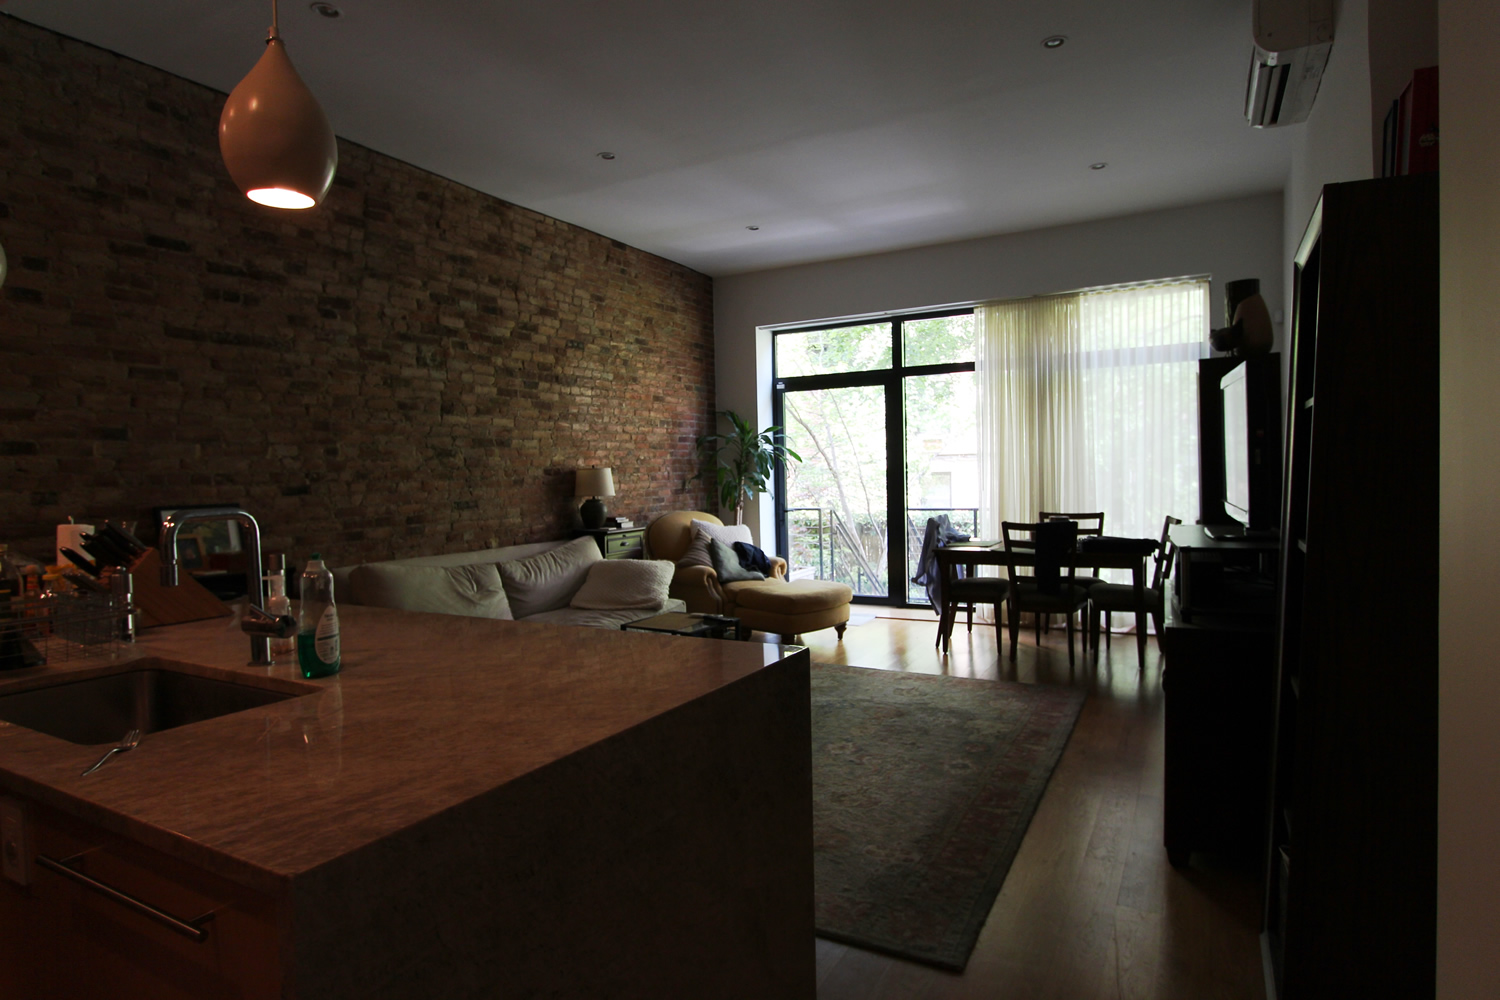 staging_luxury #15